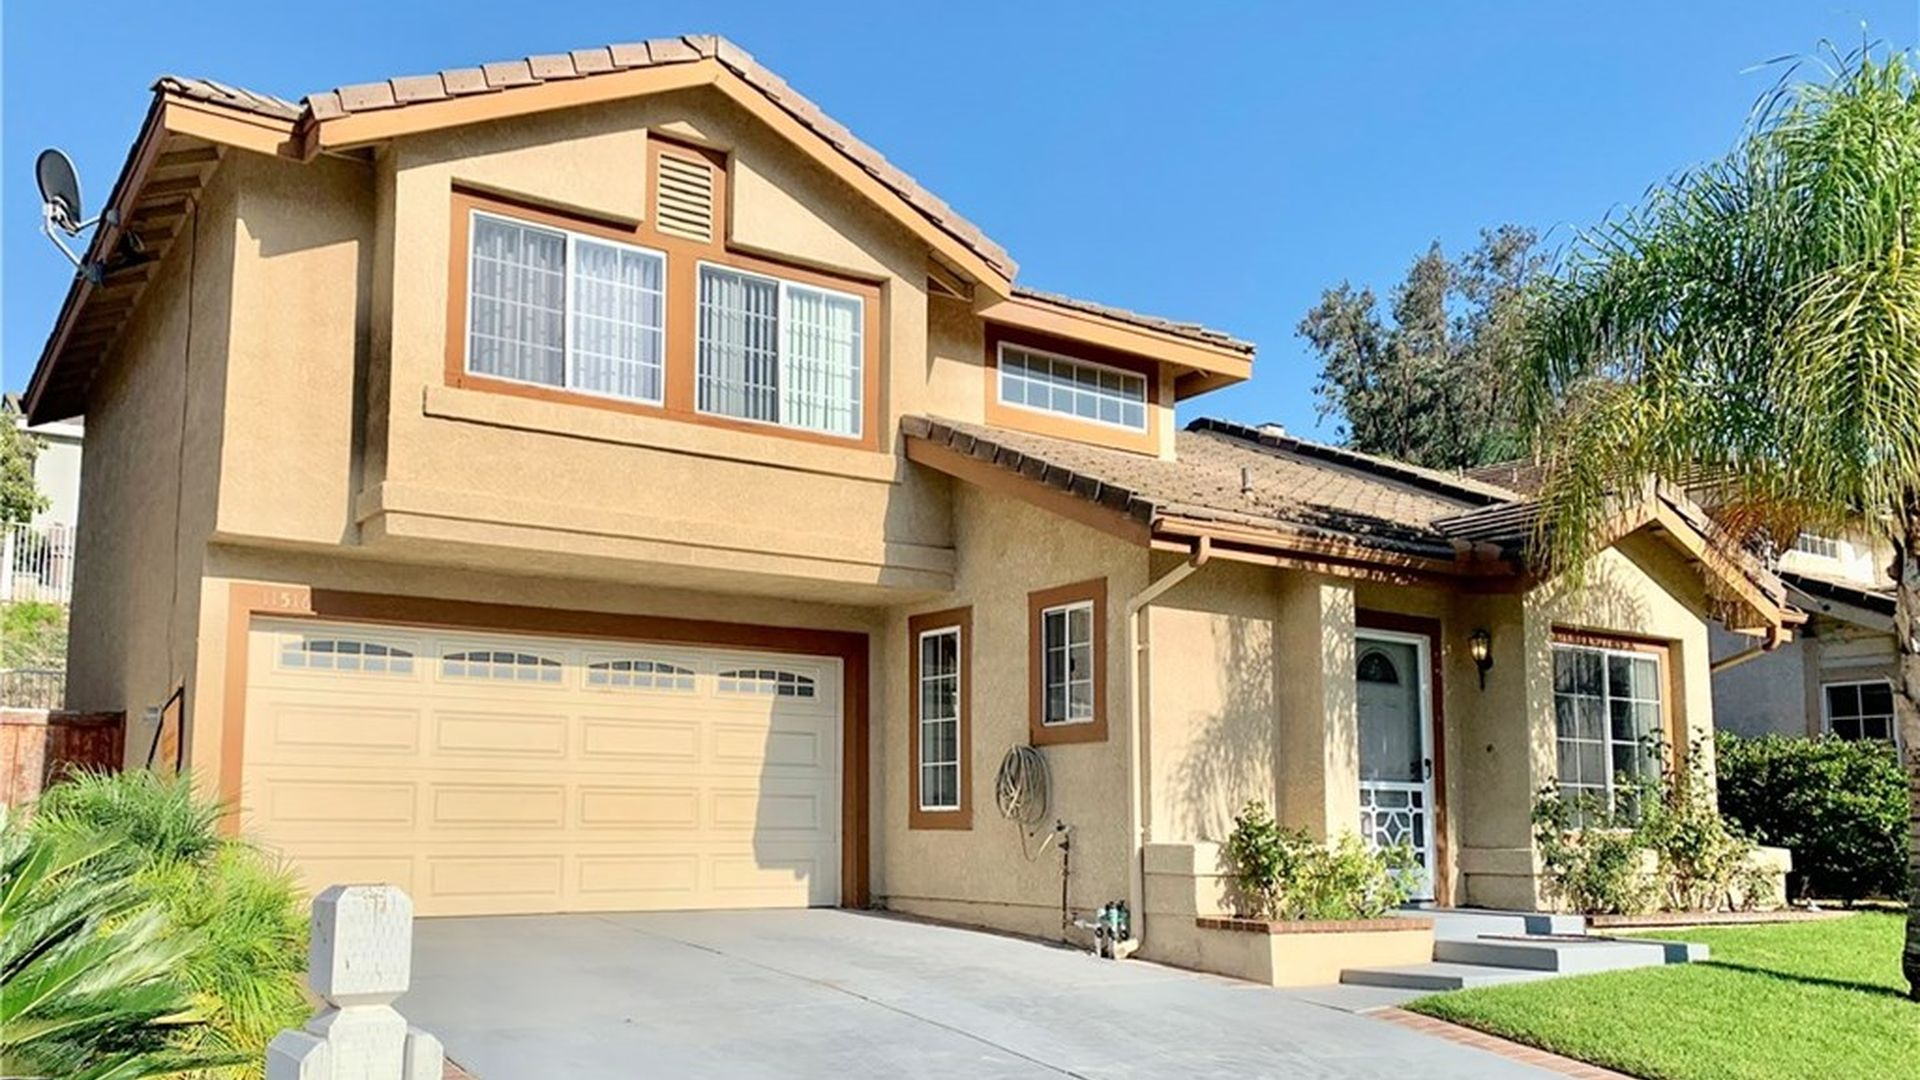 Ensure The Smooth Functioning Of Your Homeowners' Association With Corona CA Property Management Experts